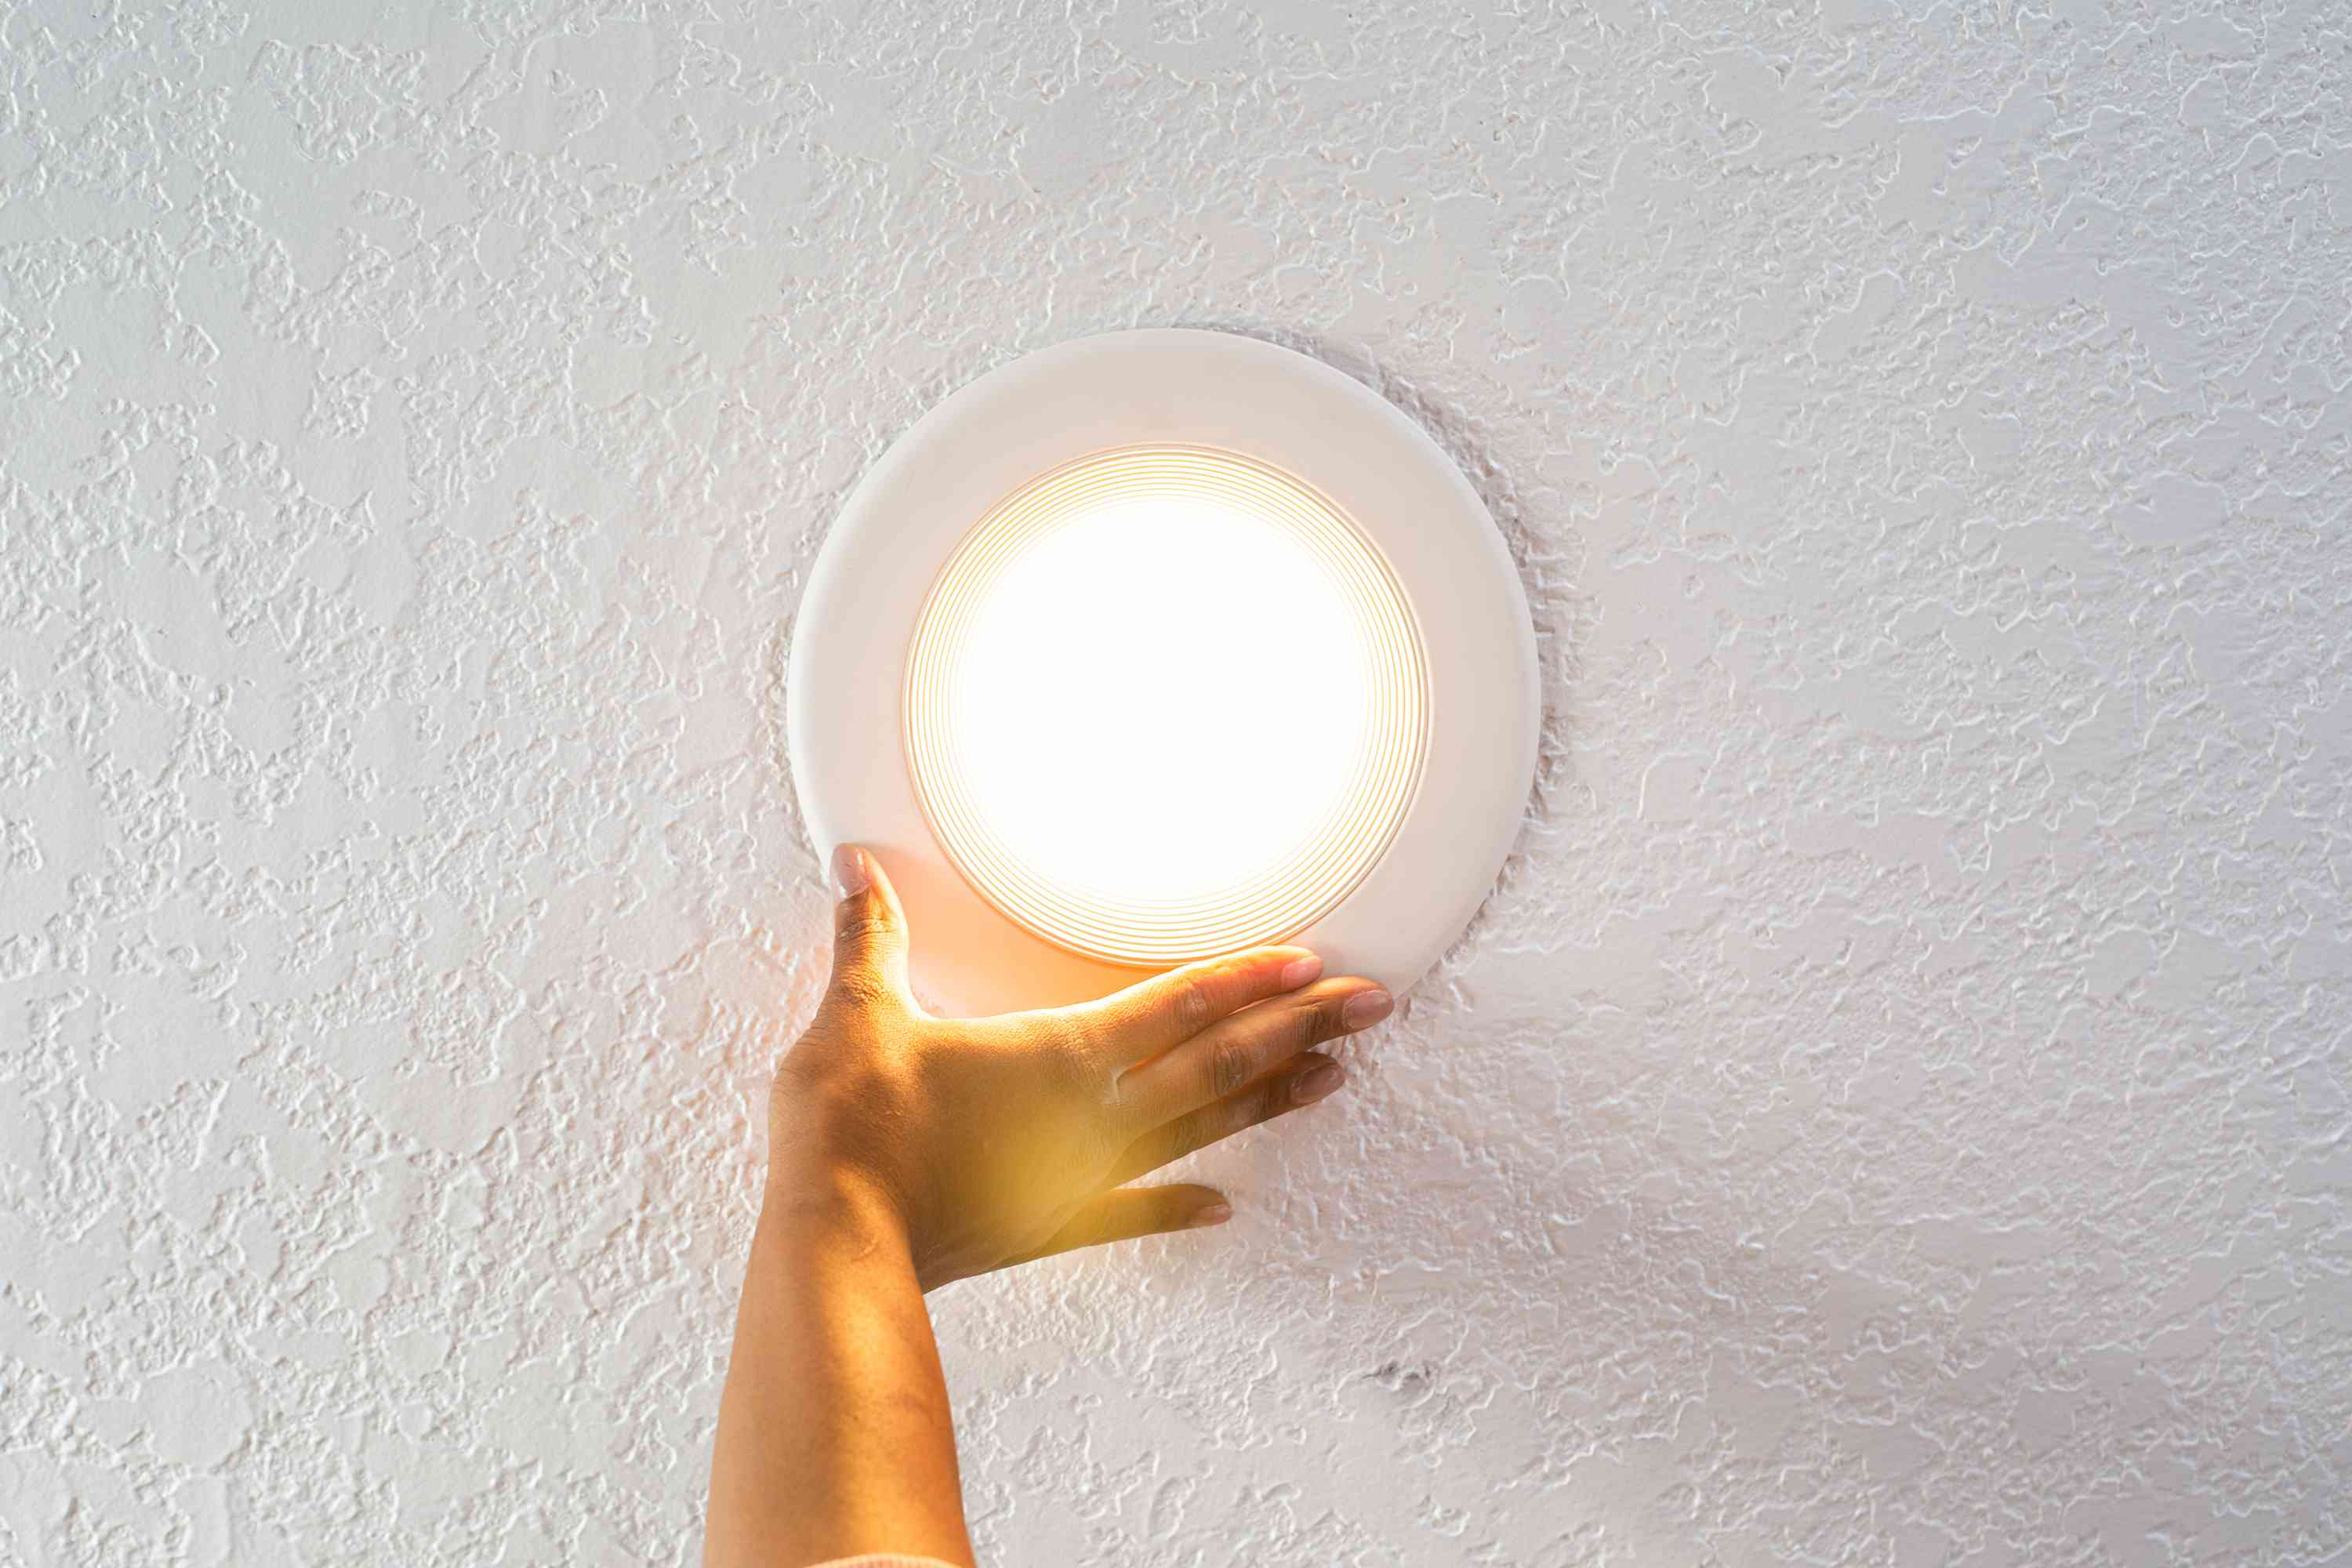 Recessed lighting held up by hand with light turned on